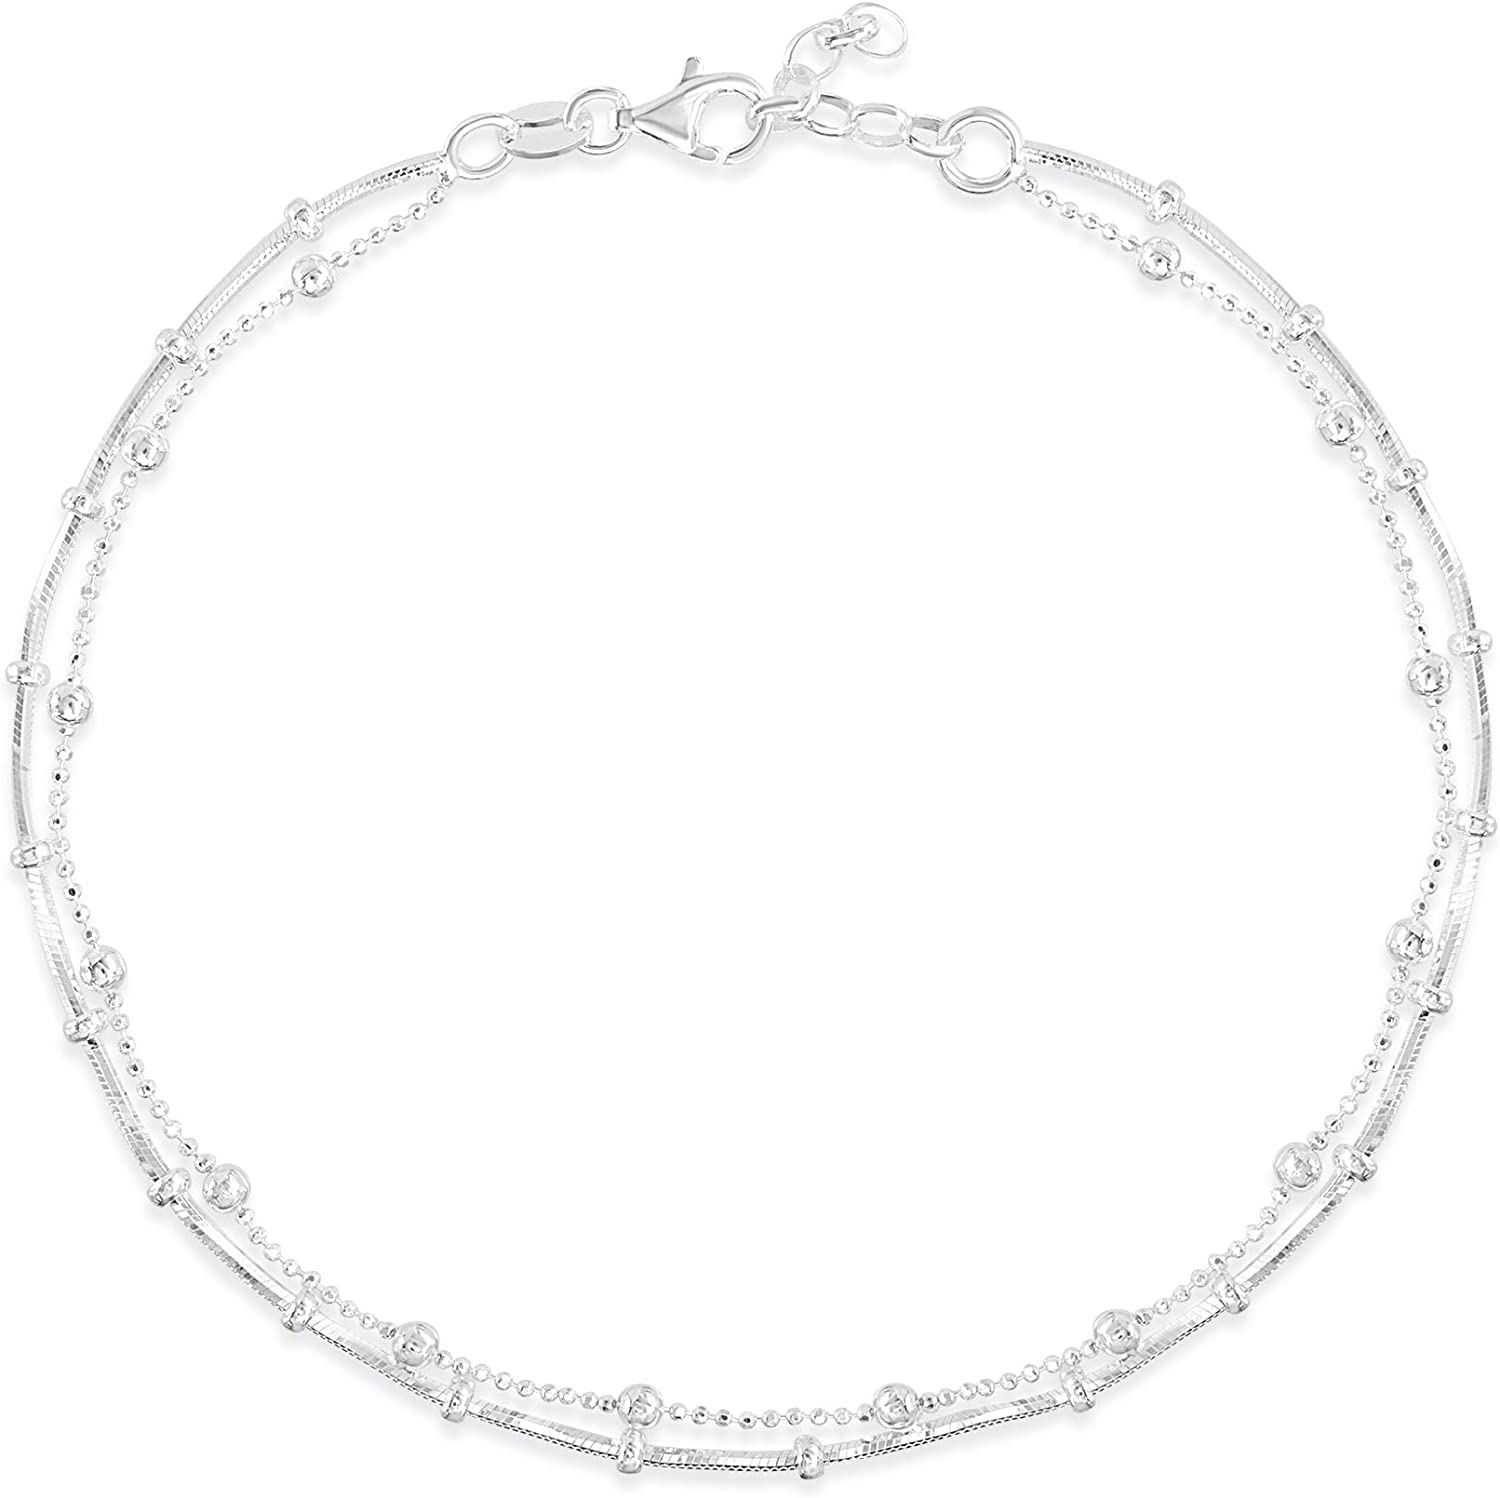 MIA SARINE Rhodium Plated Sterling Silver 10 Inch Bar Bead Chain Layered Anklet for Women